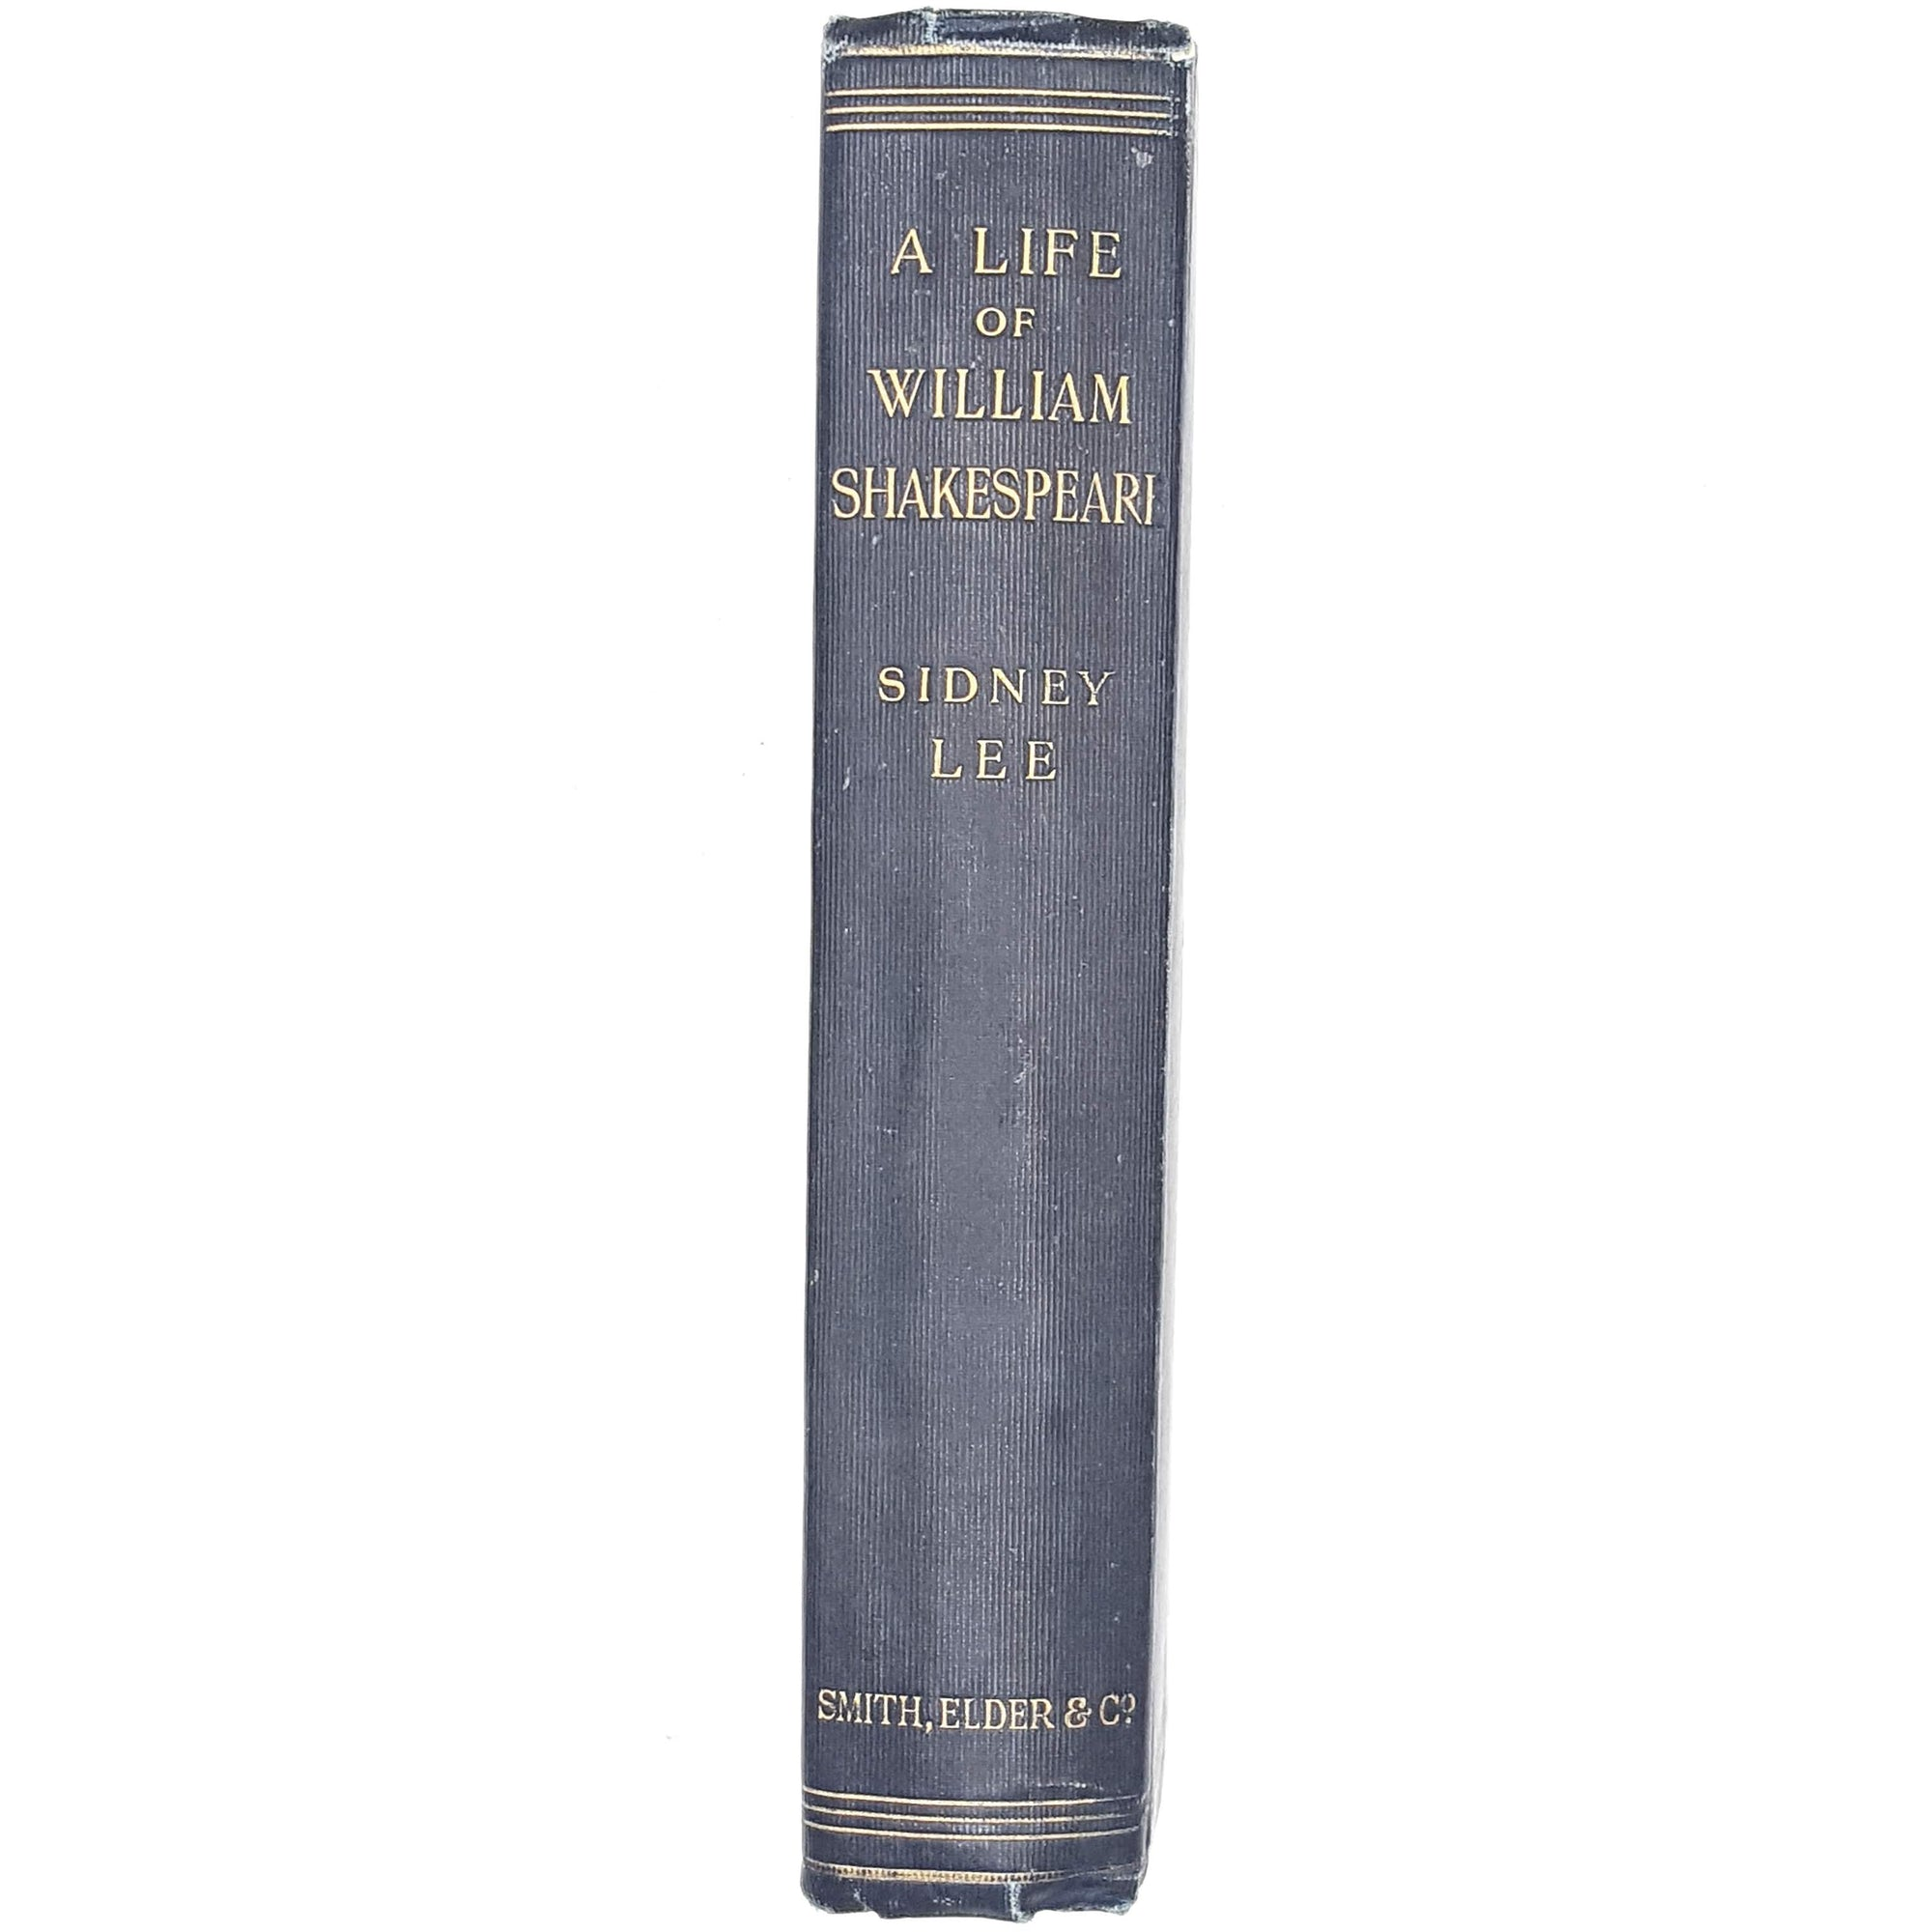 A Life of William Shakespeare by Sidney Lee 1898